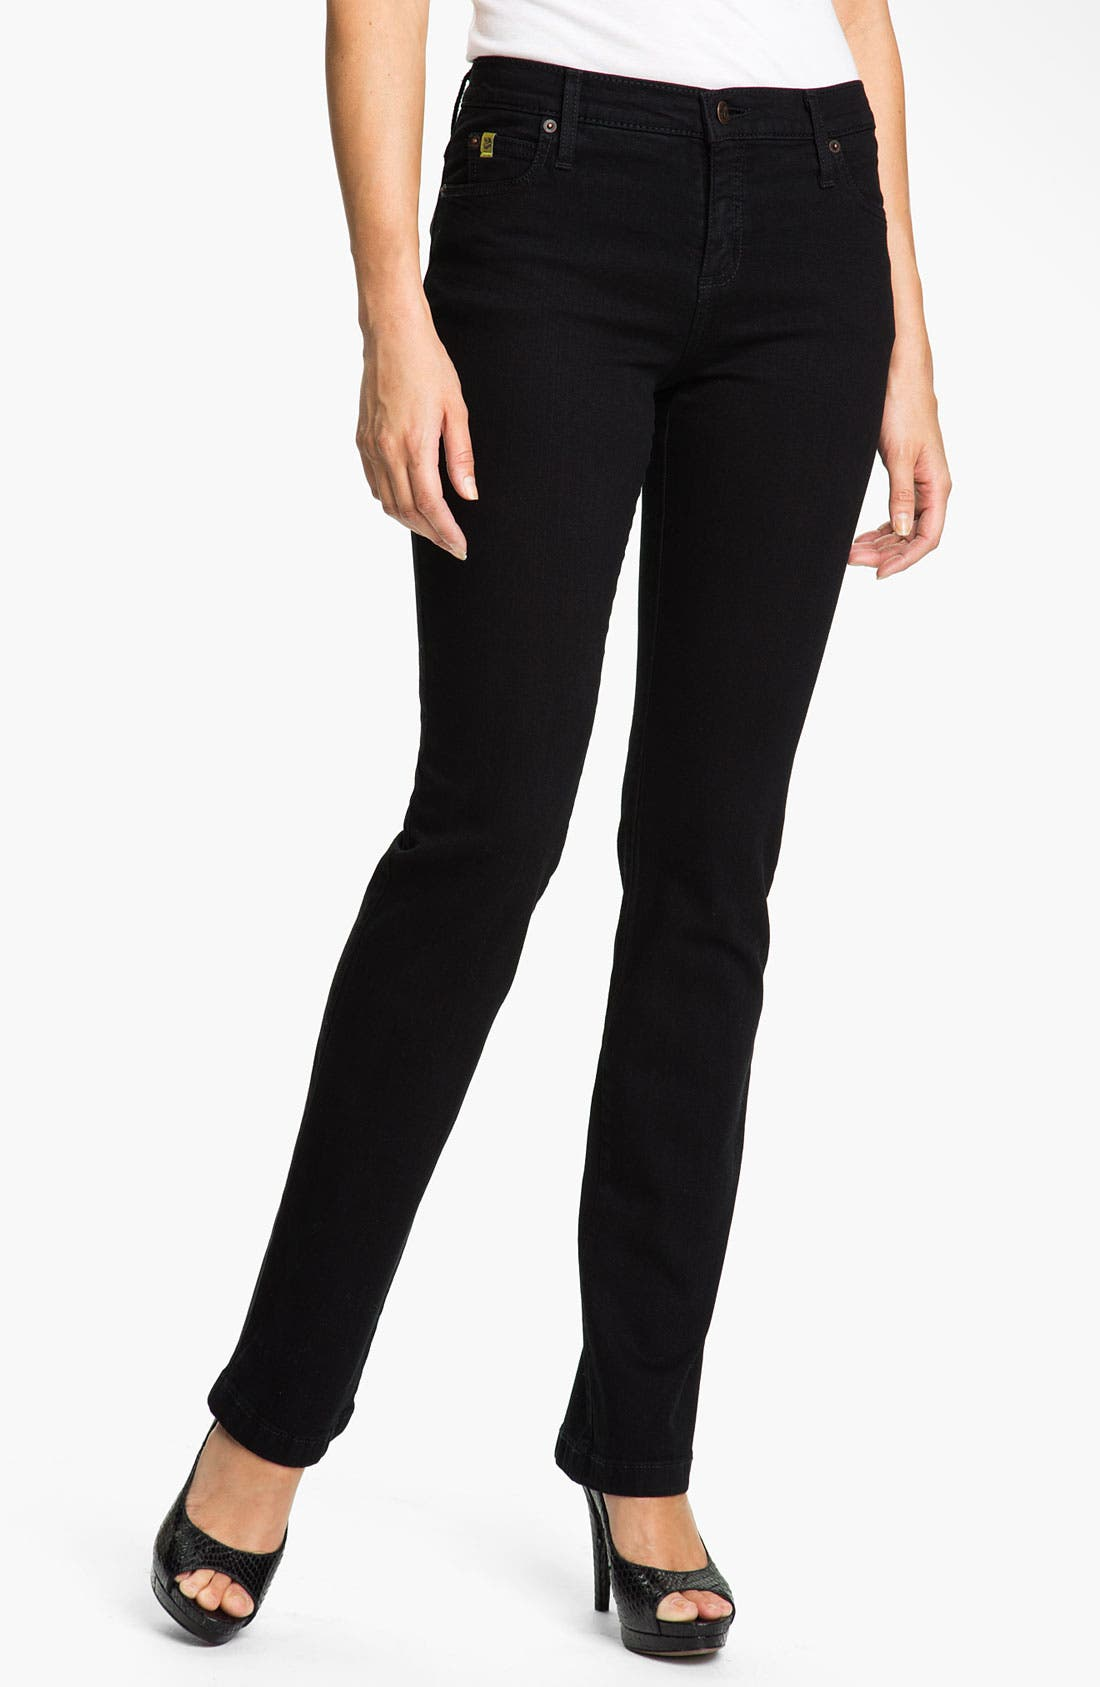 Alternate Image 1 Selected - Yoga Jeans by Second Denim Straight Leg Jeans